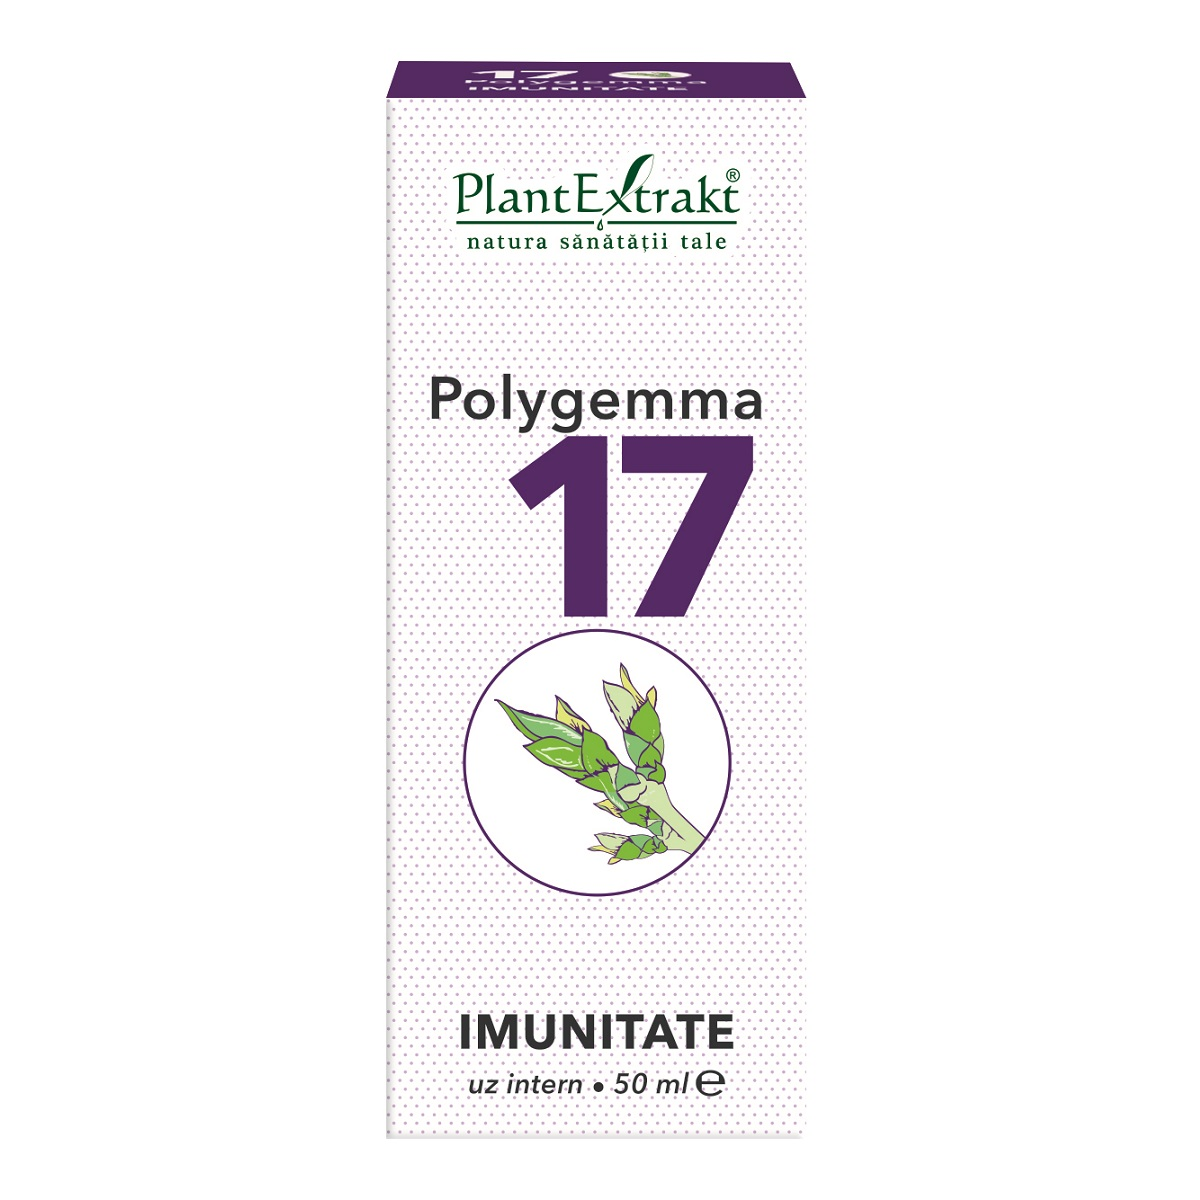 Polygemma 17 Imunitate, 50ml, Plant Extrakt imagine produs 2021